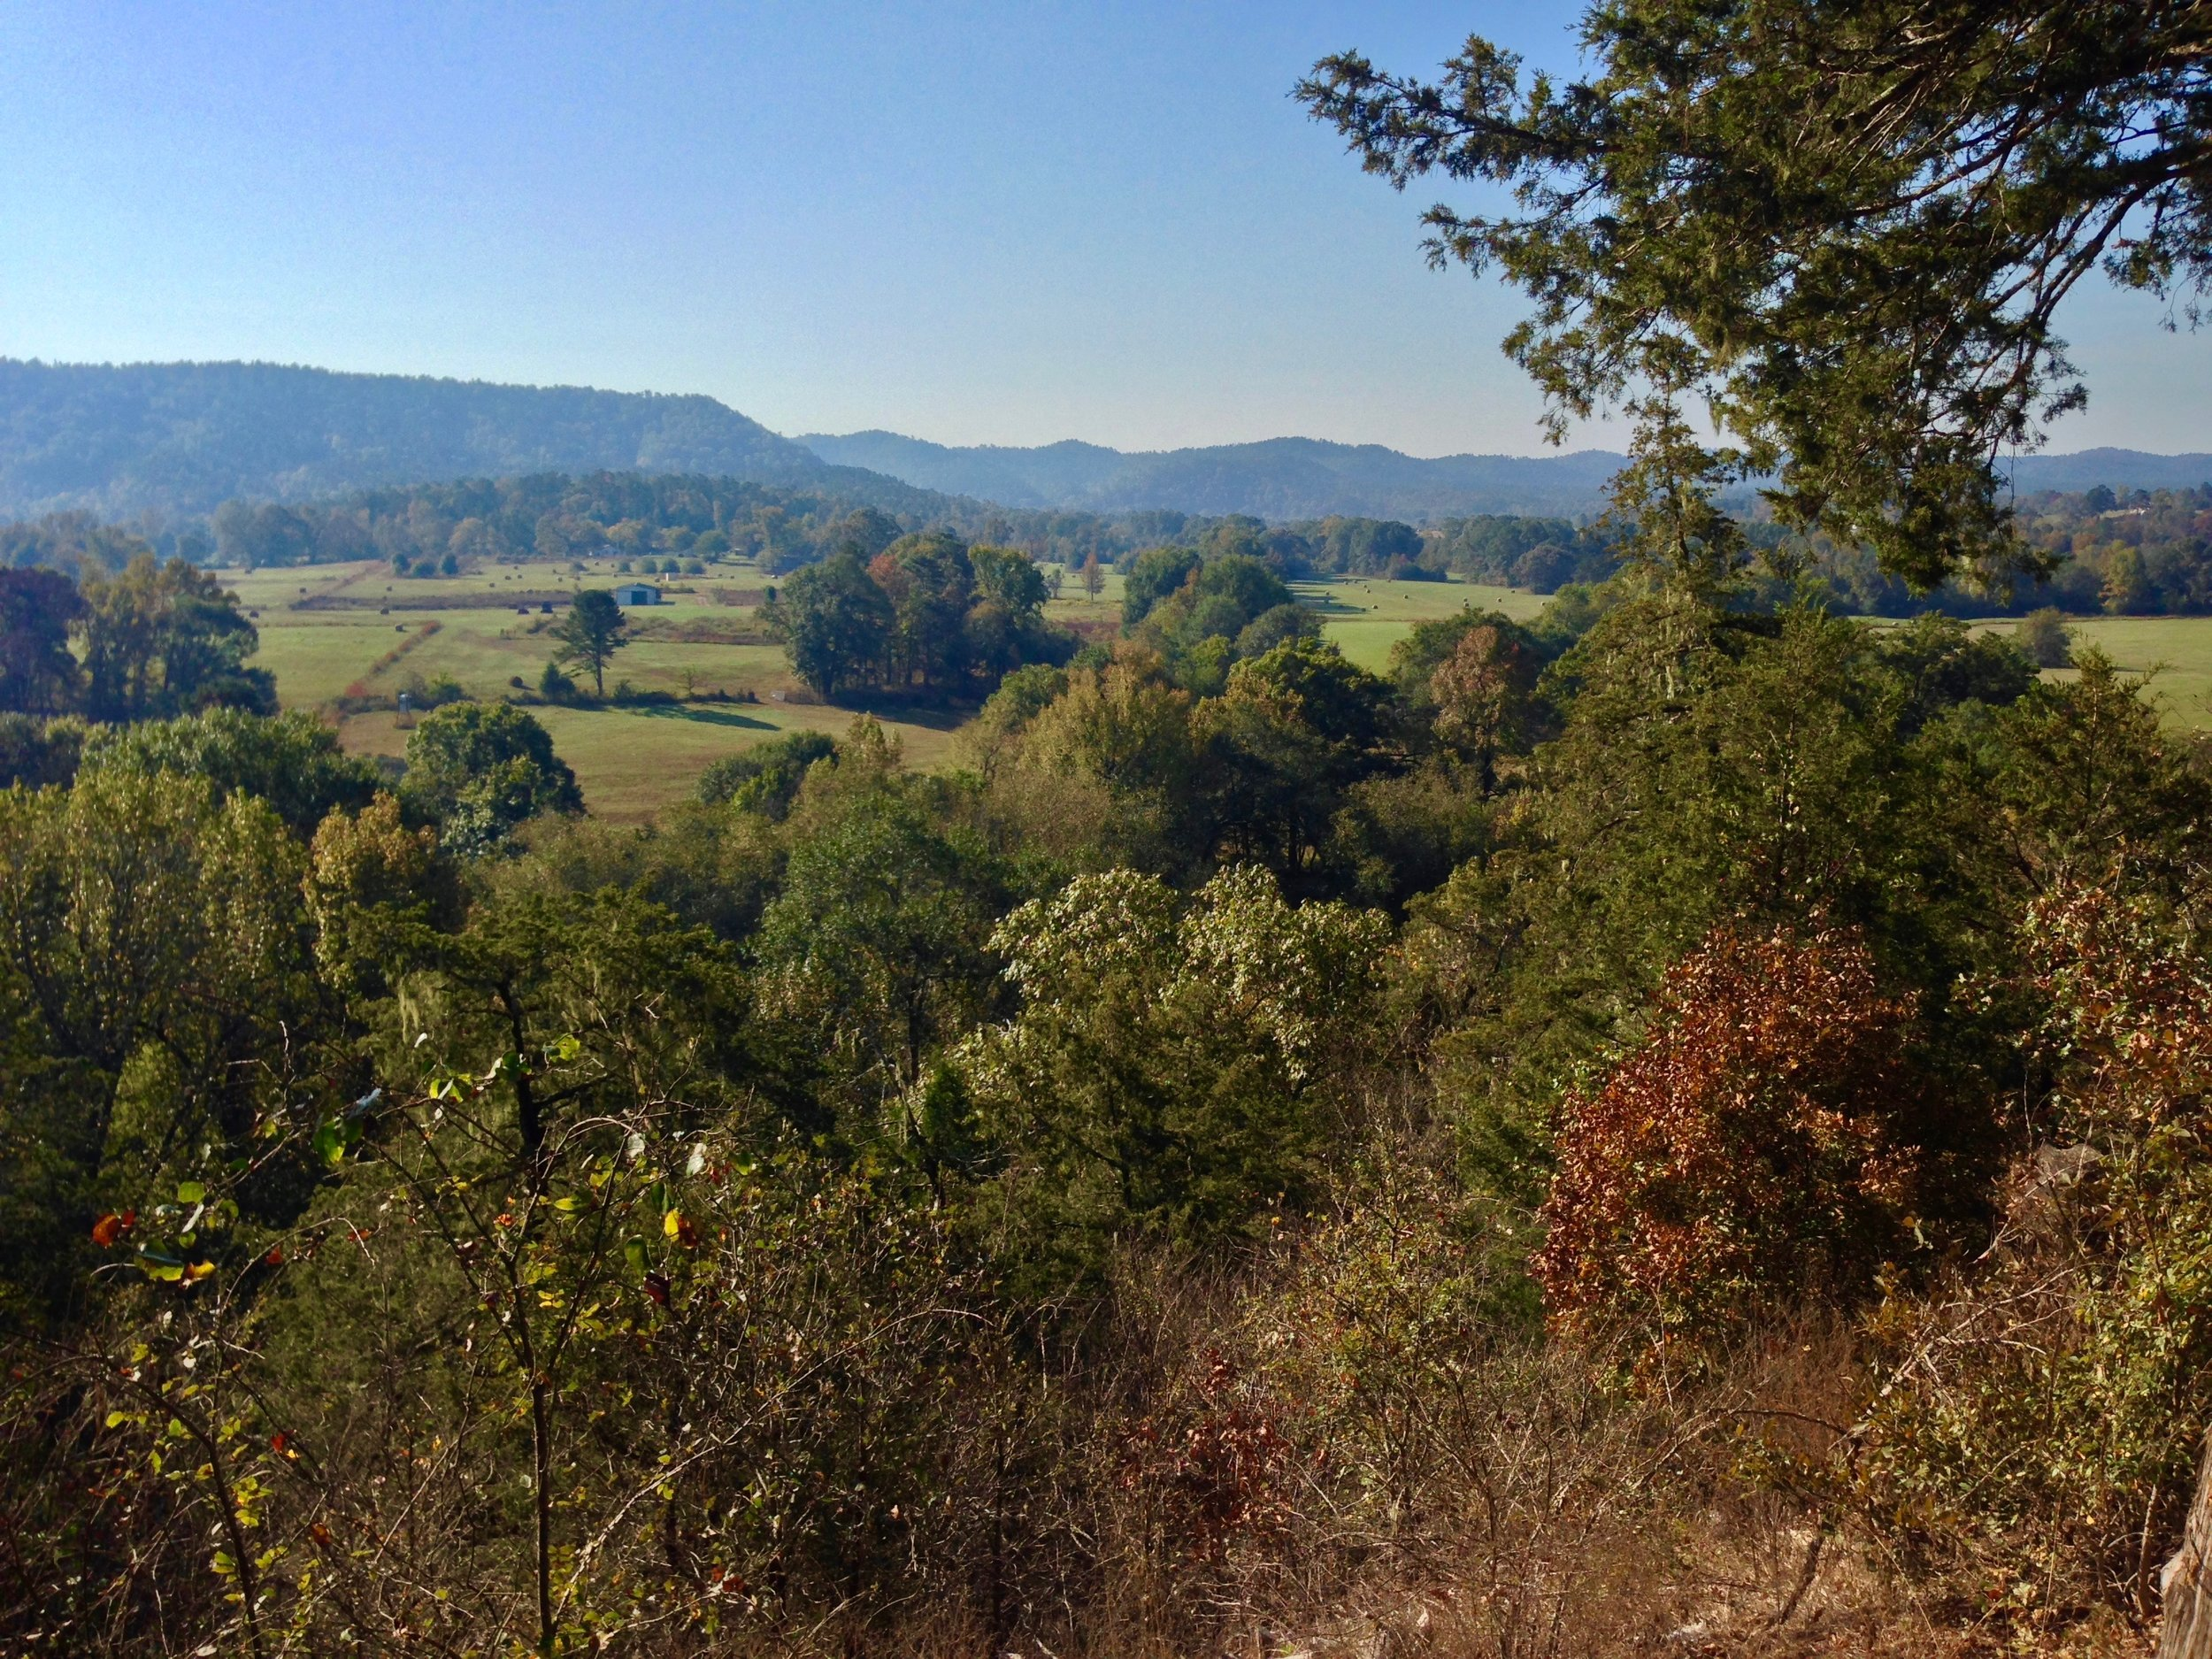 The Ouachita National Forest, Pencil Bluff, Arkansas